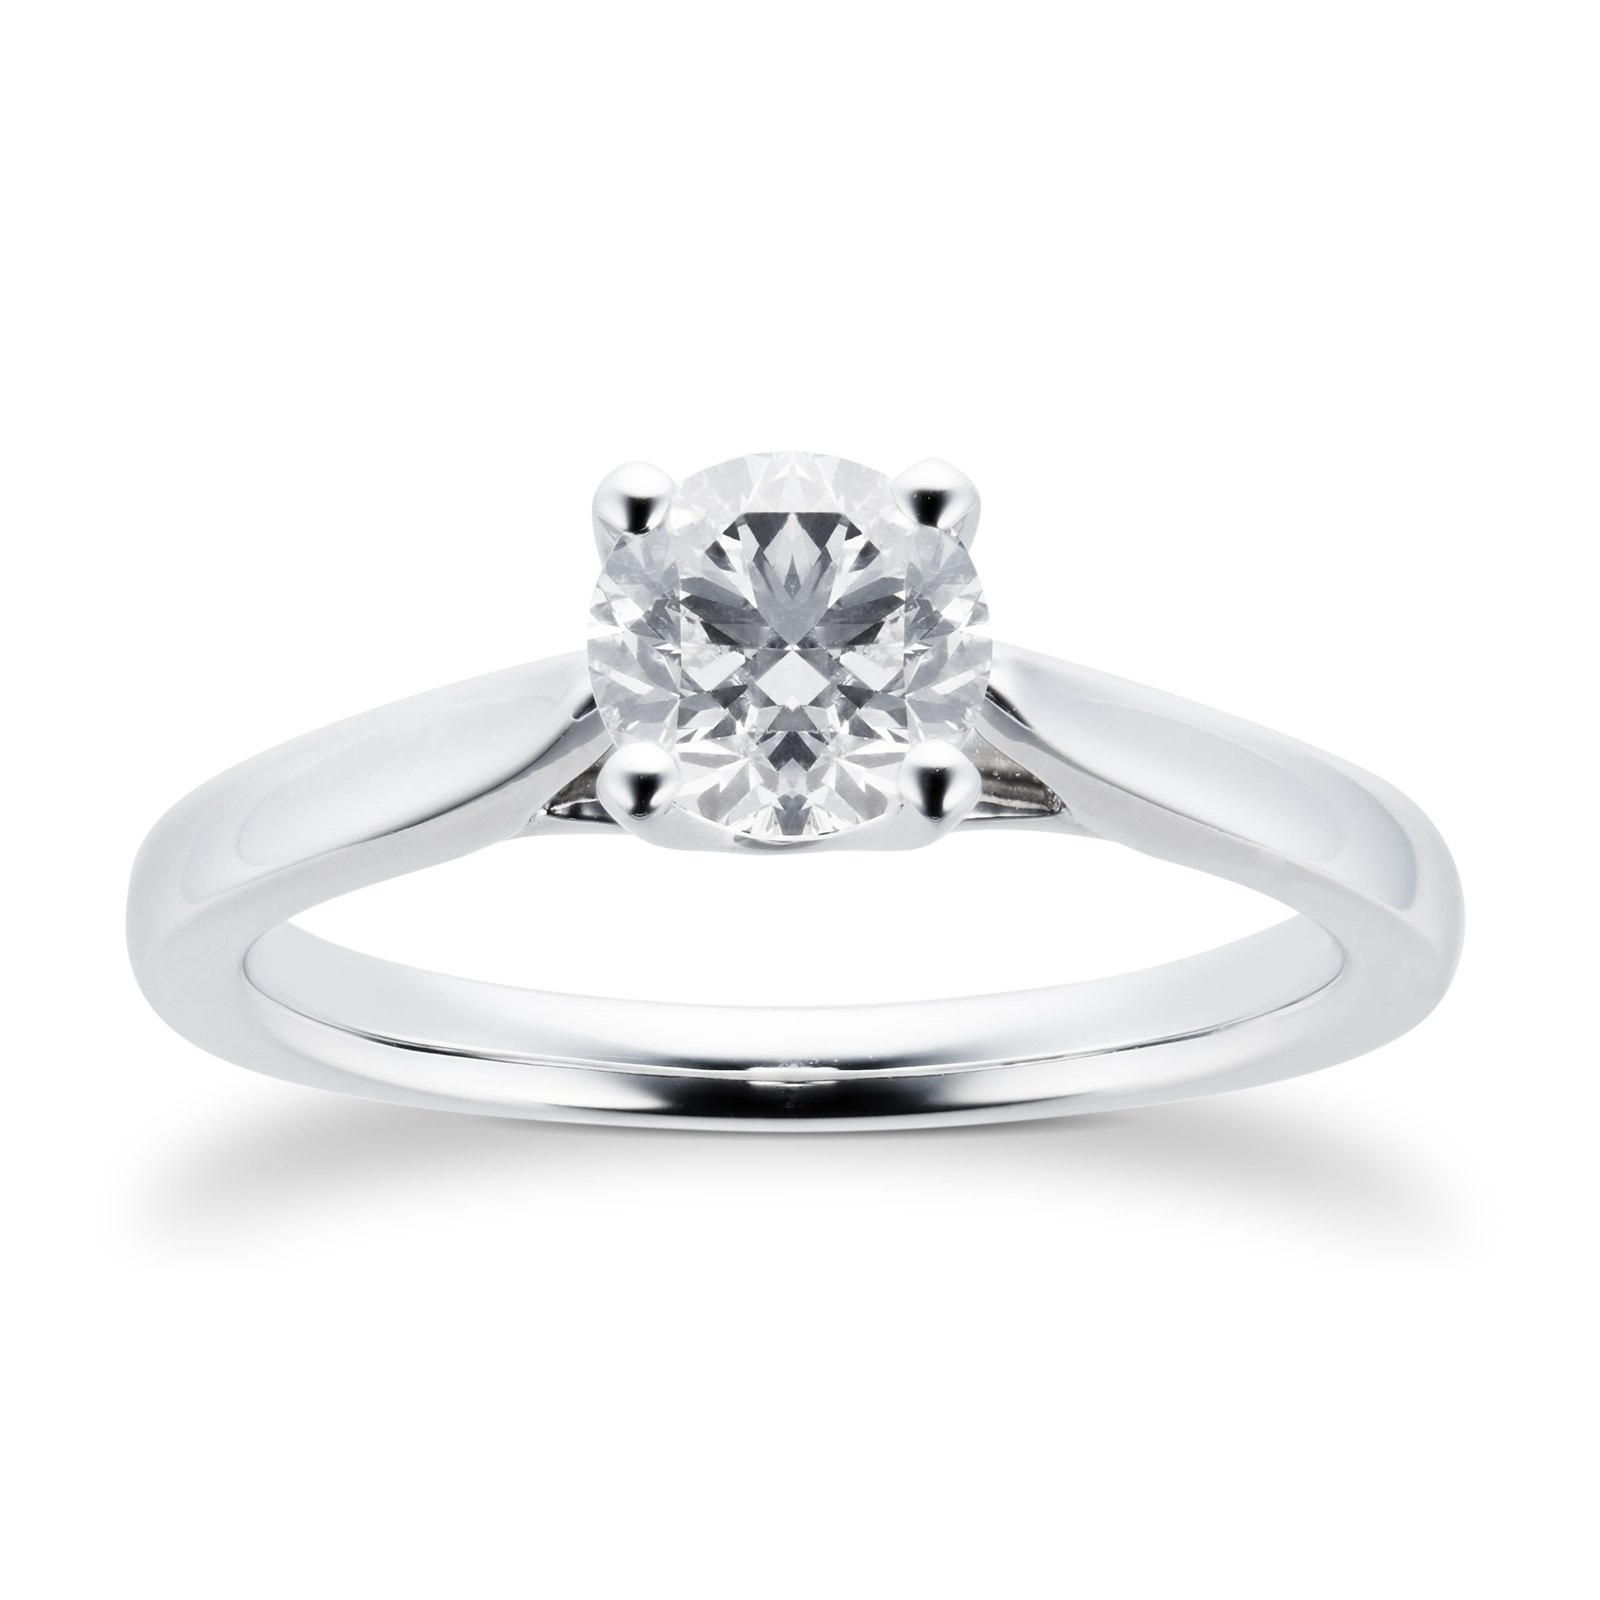 Platinum Brilliant Cut 0.70 Carat 88 Facet Diamond Ring